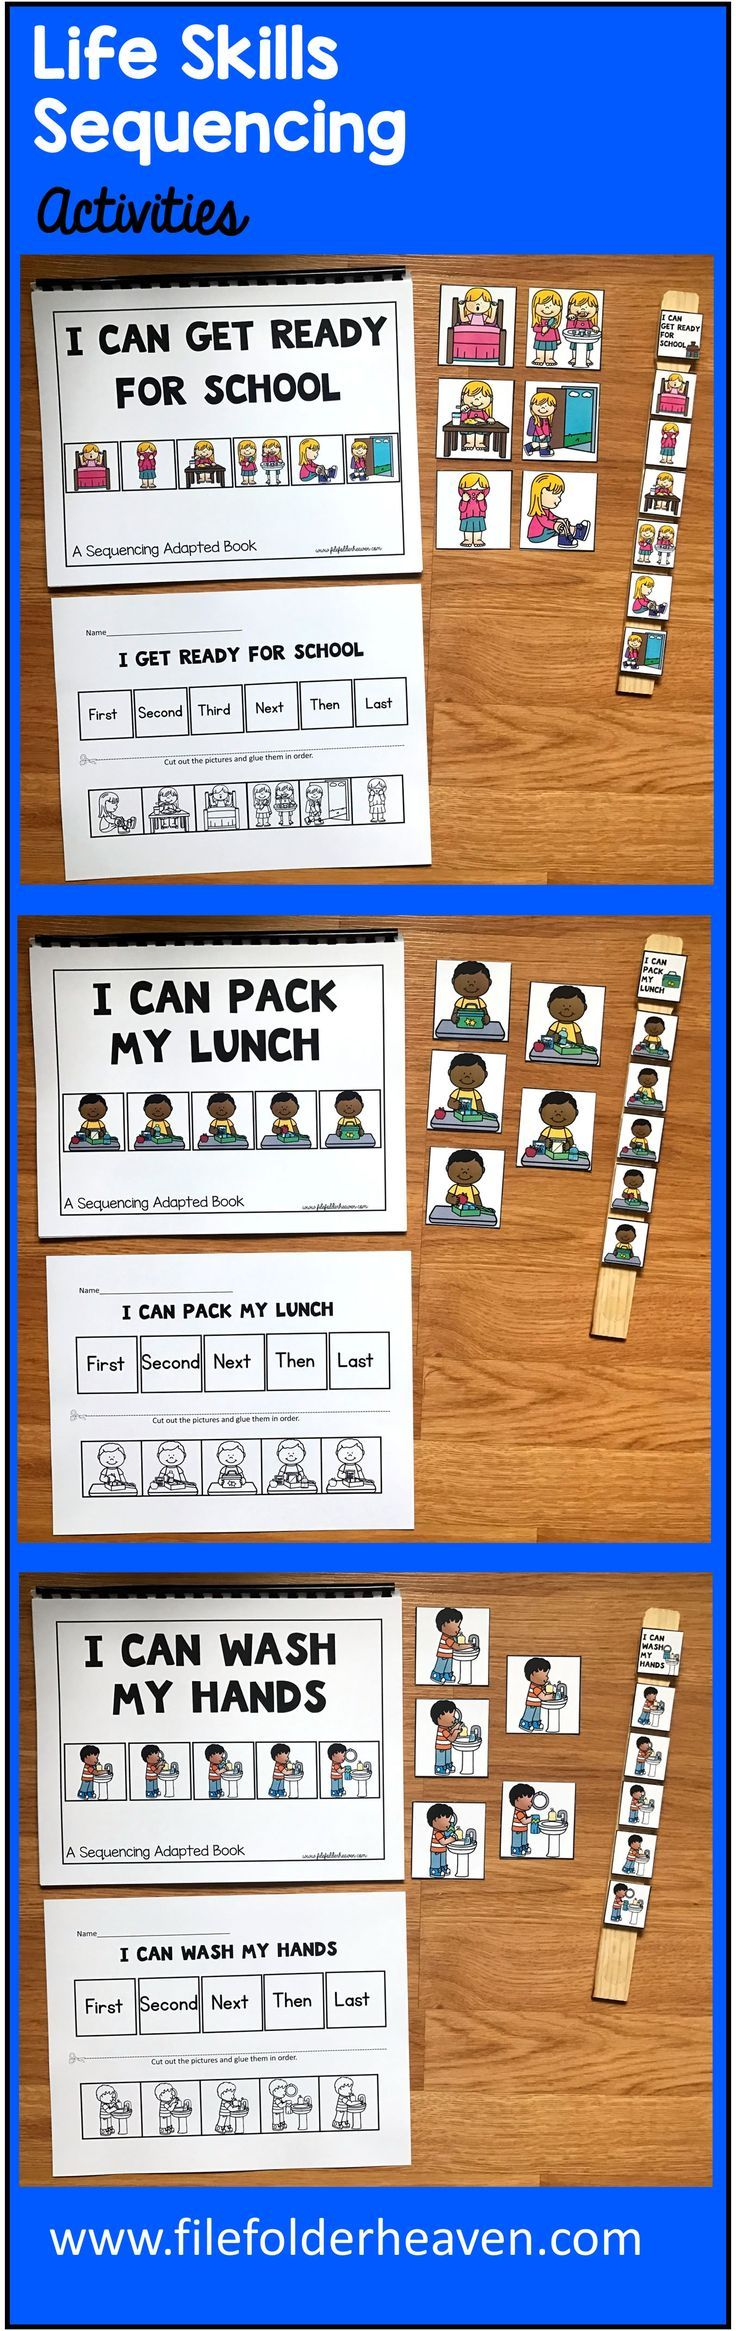 These Life Skills Sequencing Activities include 5 Adapted Books, 5 accompanying worksheets, and 5 sets of visuals for task analysis. Each of the Adapted Books teaches a simple 5 or 6 sequence step life skill or daily living skill.  Adapted Books Included:    I Can Get Ready for School I Can Pack My Lunch I Can Wash My Hands I Can Get Ready for Bed I Can Cross the Street